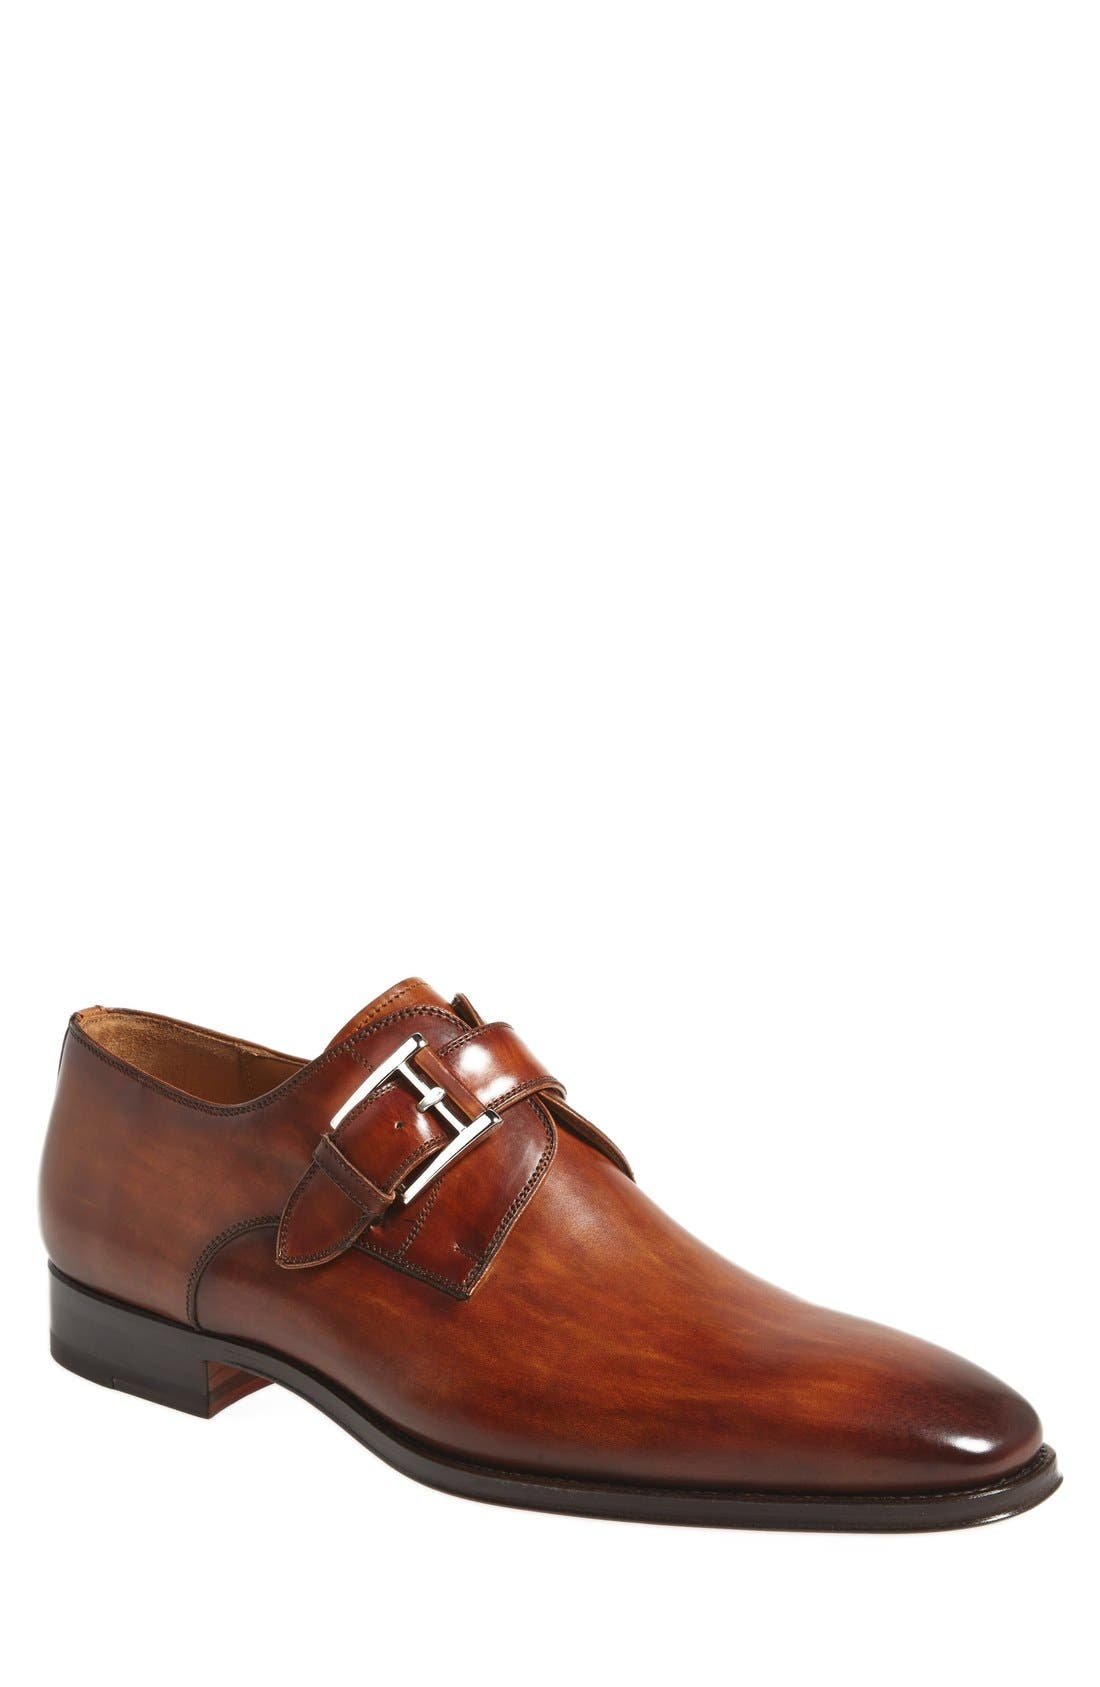 Marco Monk Strap Loafer,                             Main thumbnail 1, color,                             CUERO BROWN LEATHER